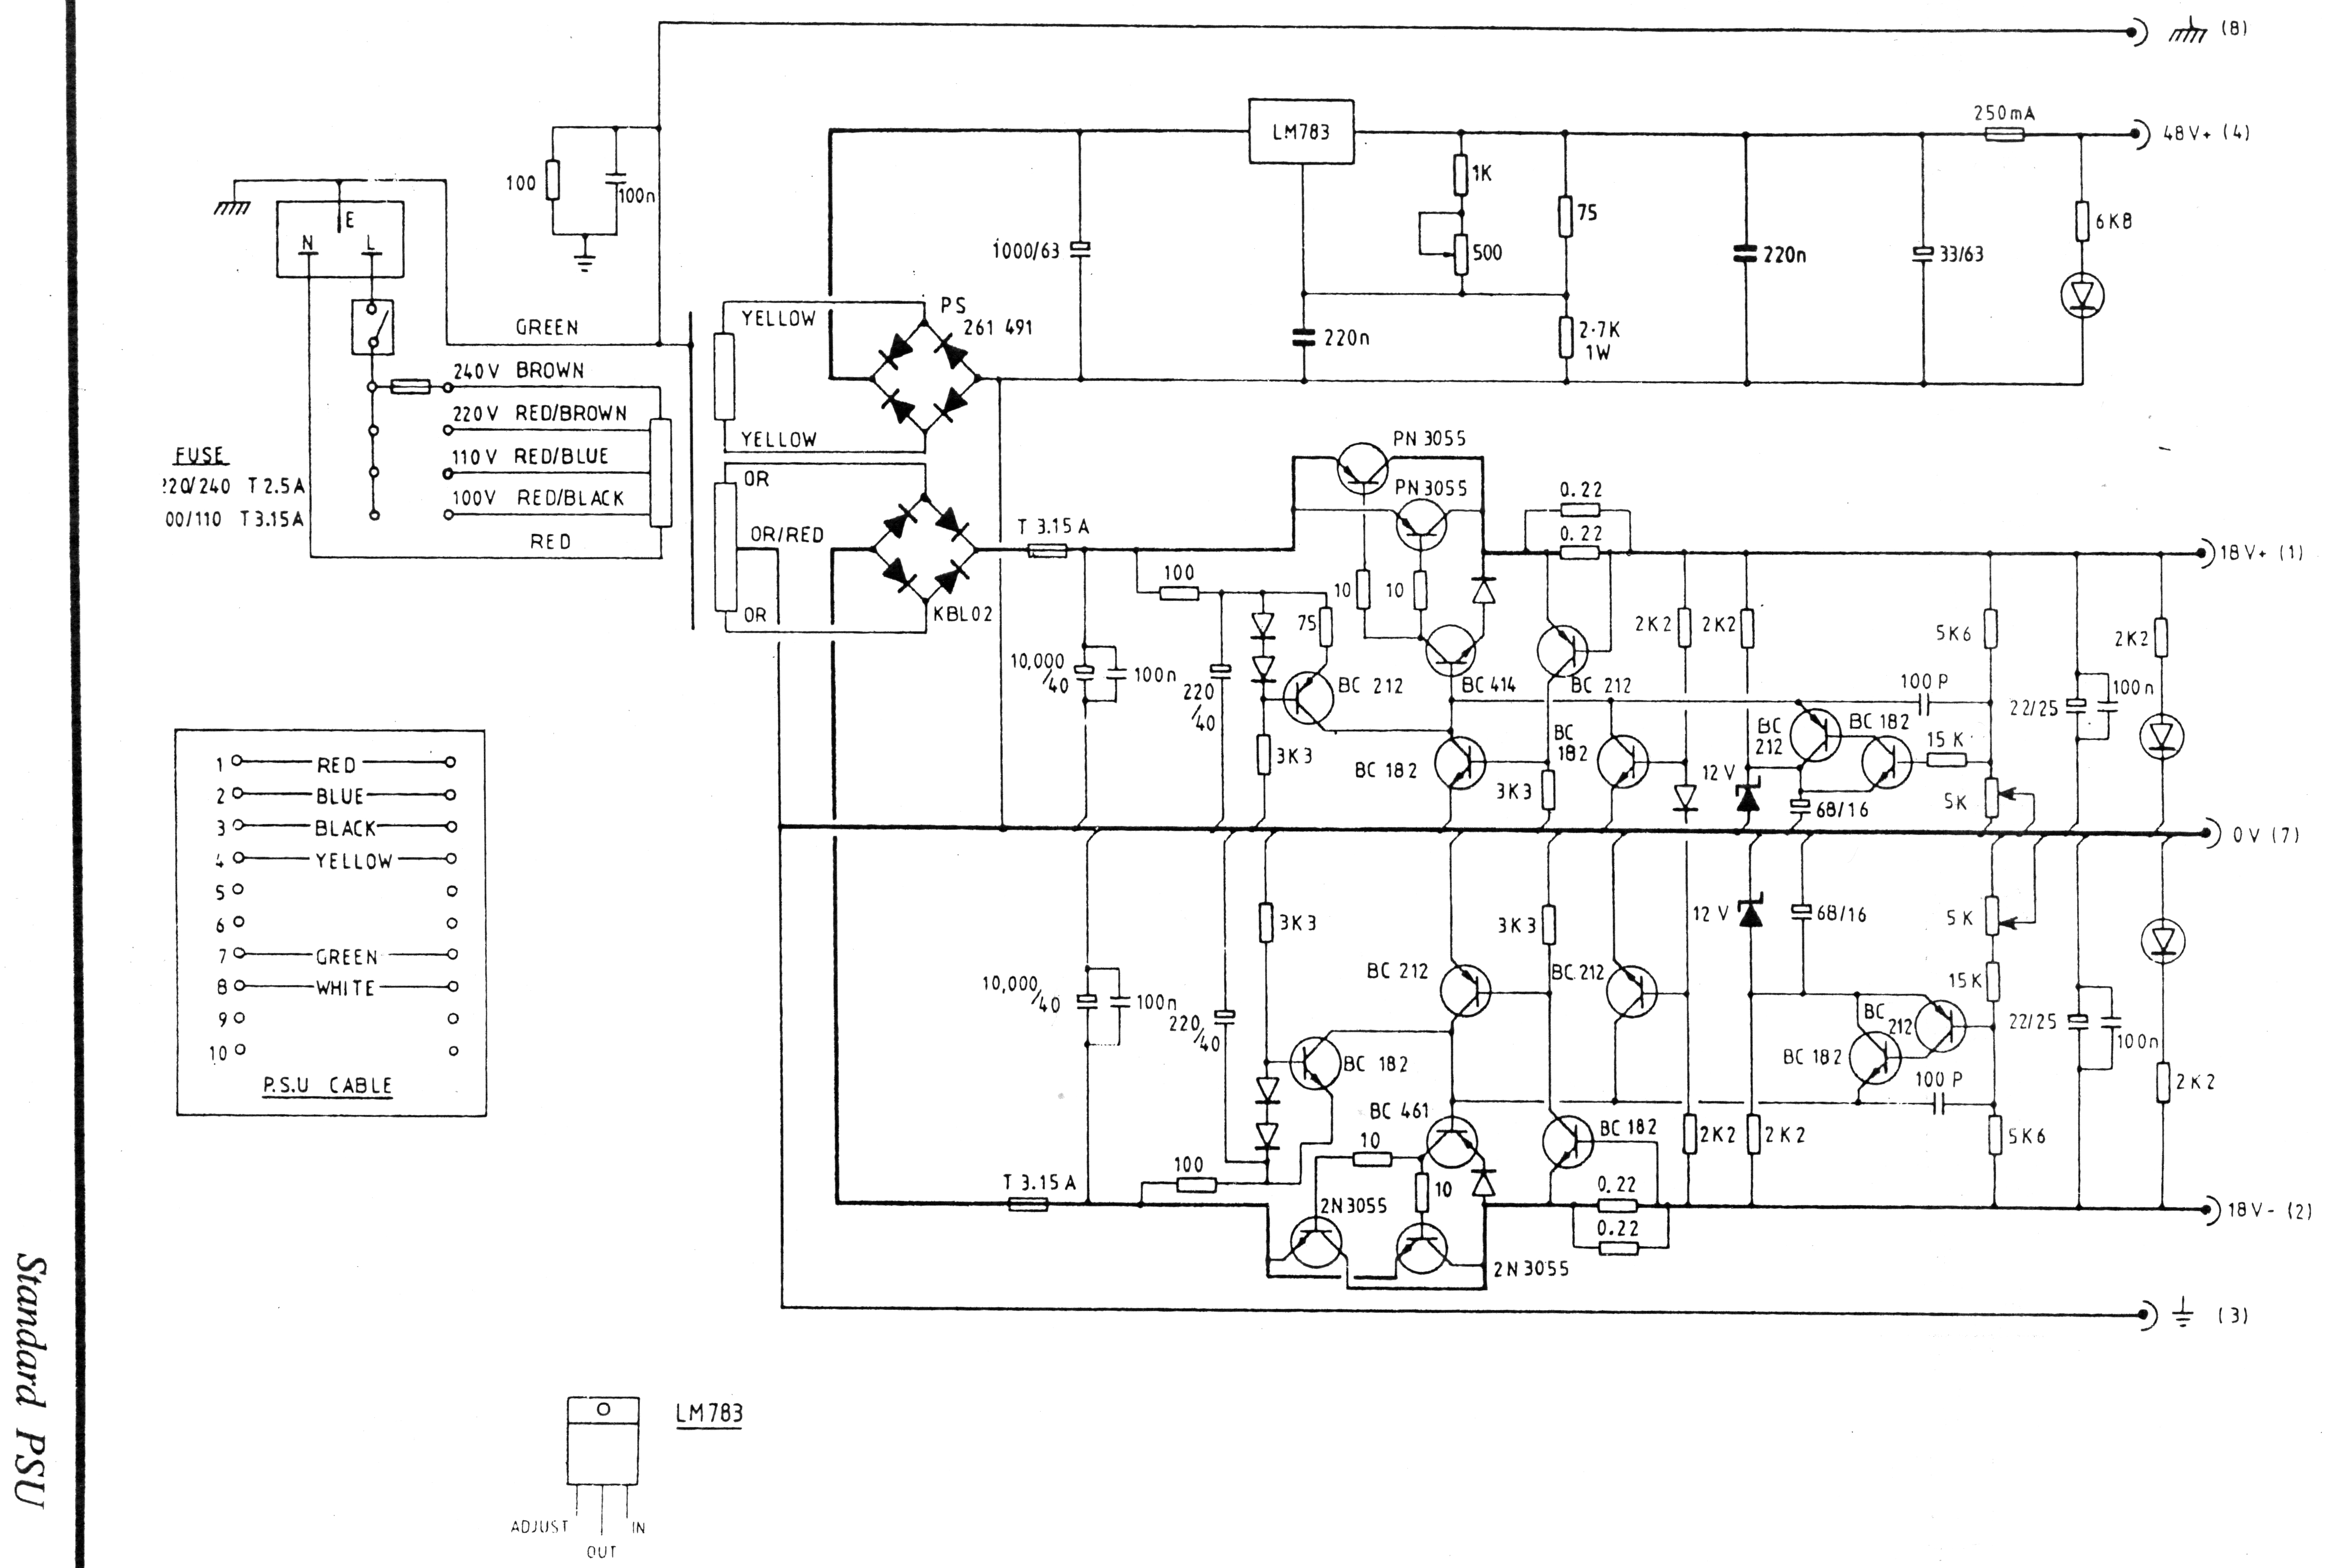 Dda S Channel Host Schematics Posted At Bottom Of